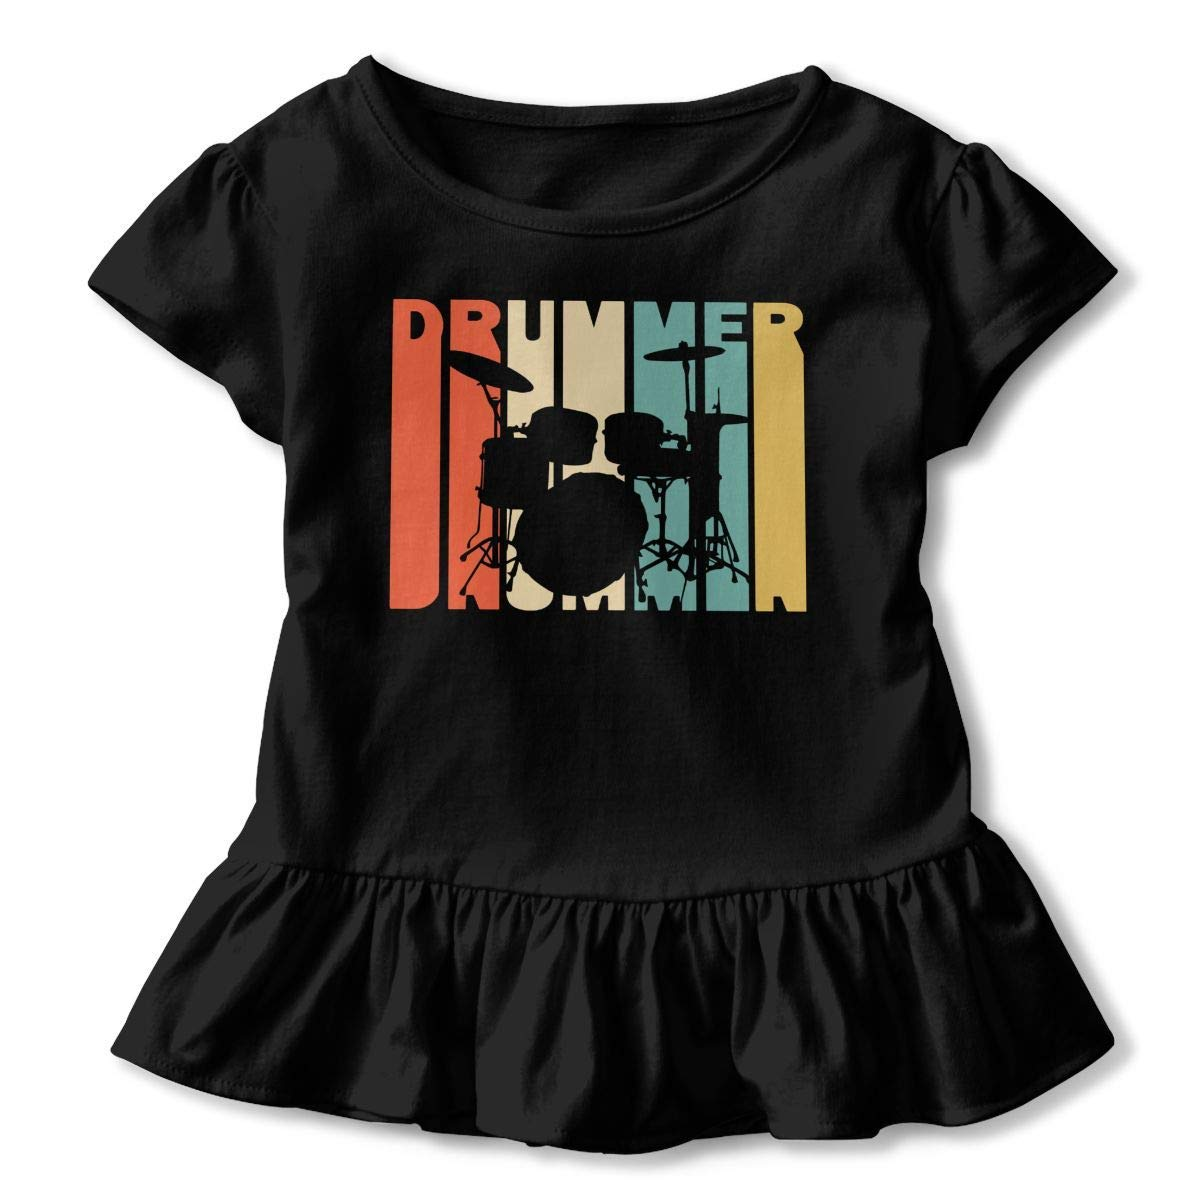 Casual Sweatshirt with Falbala 2-6T Short Sleeve Retro Style Drummer Silhouette T-Shirts for Kids